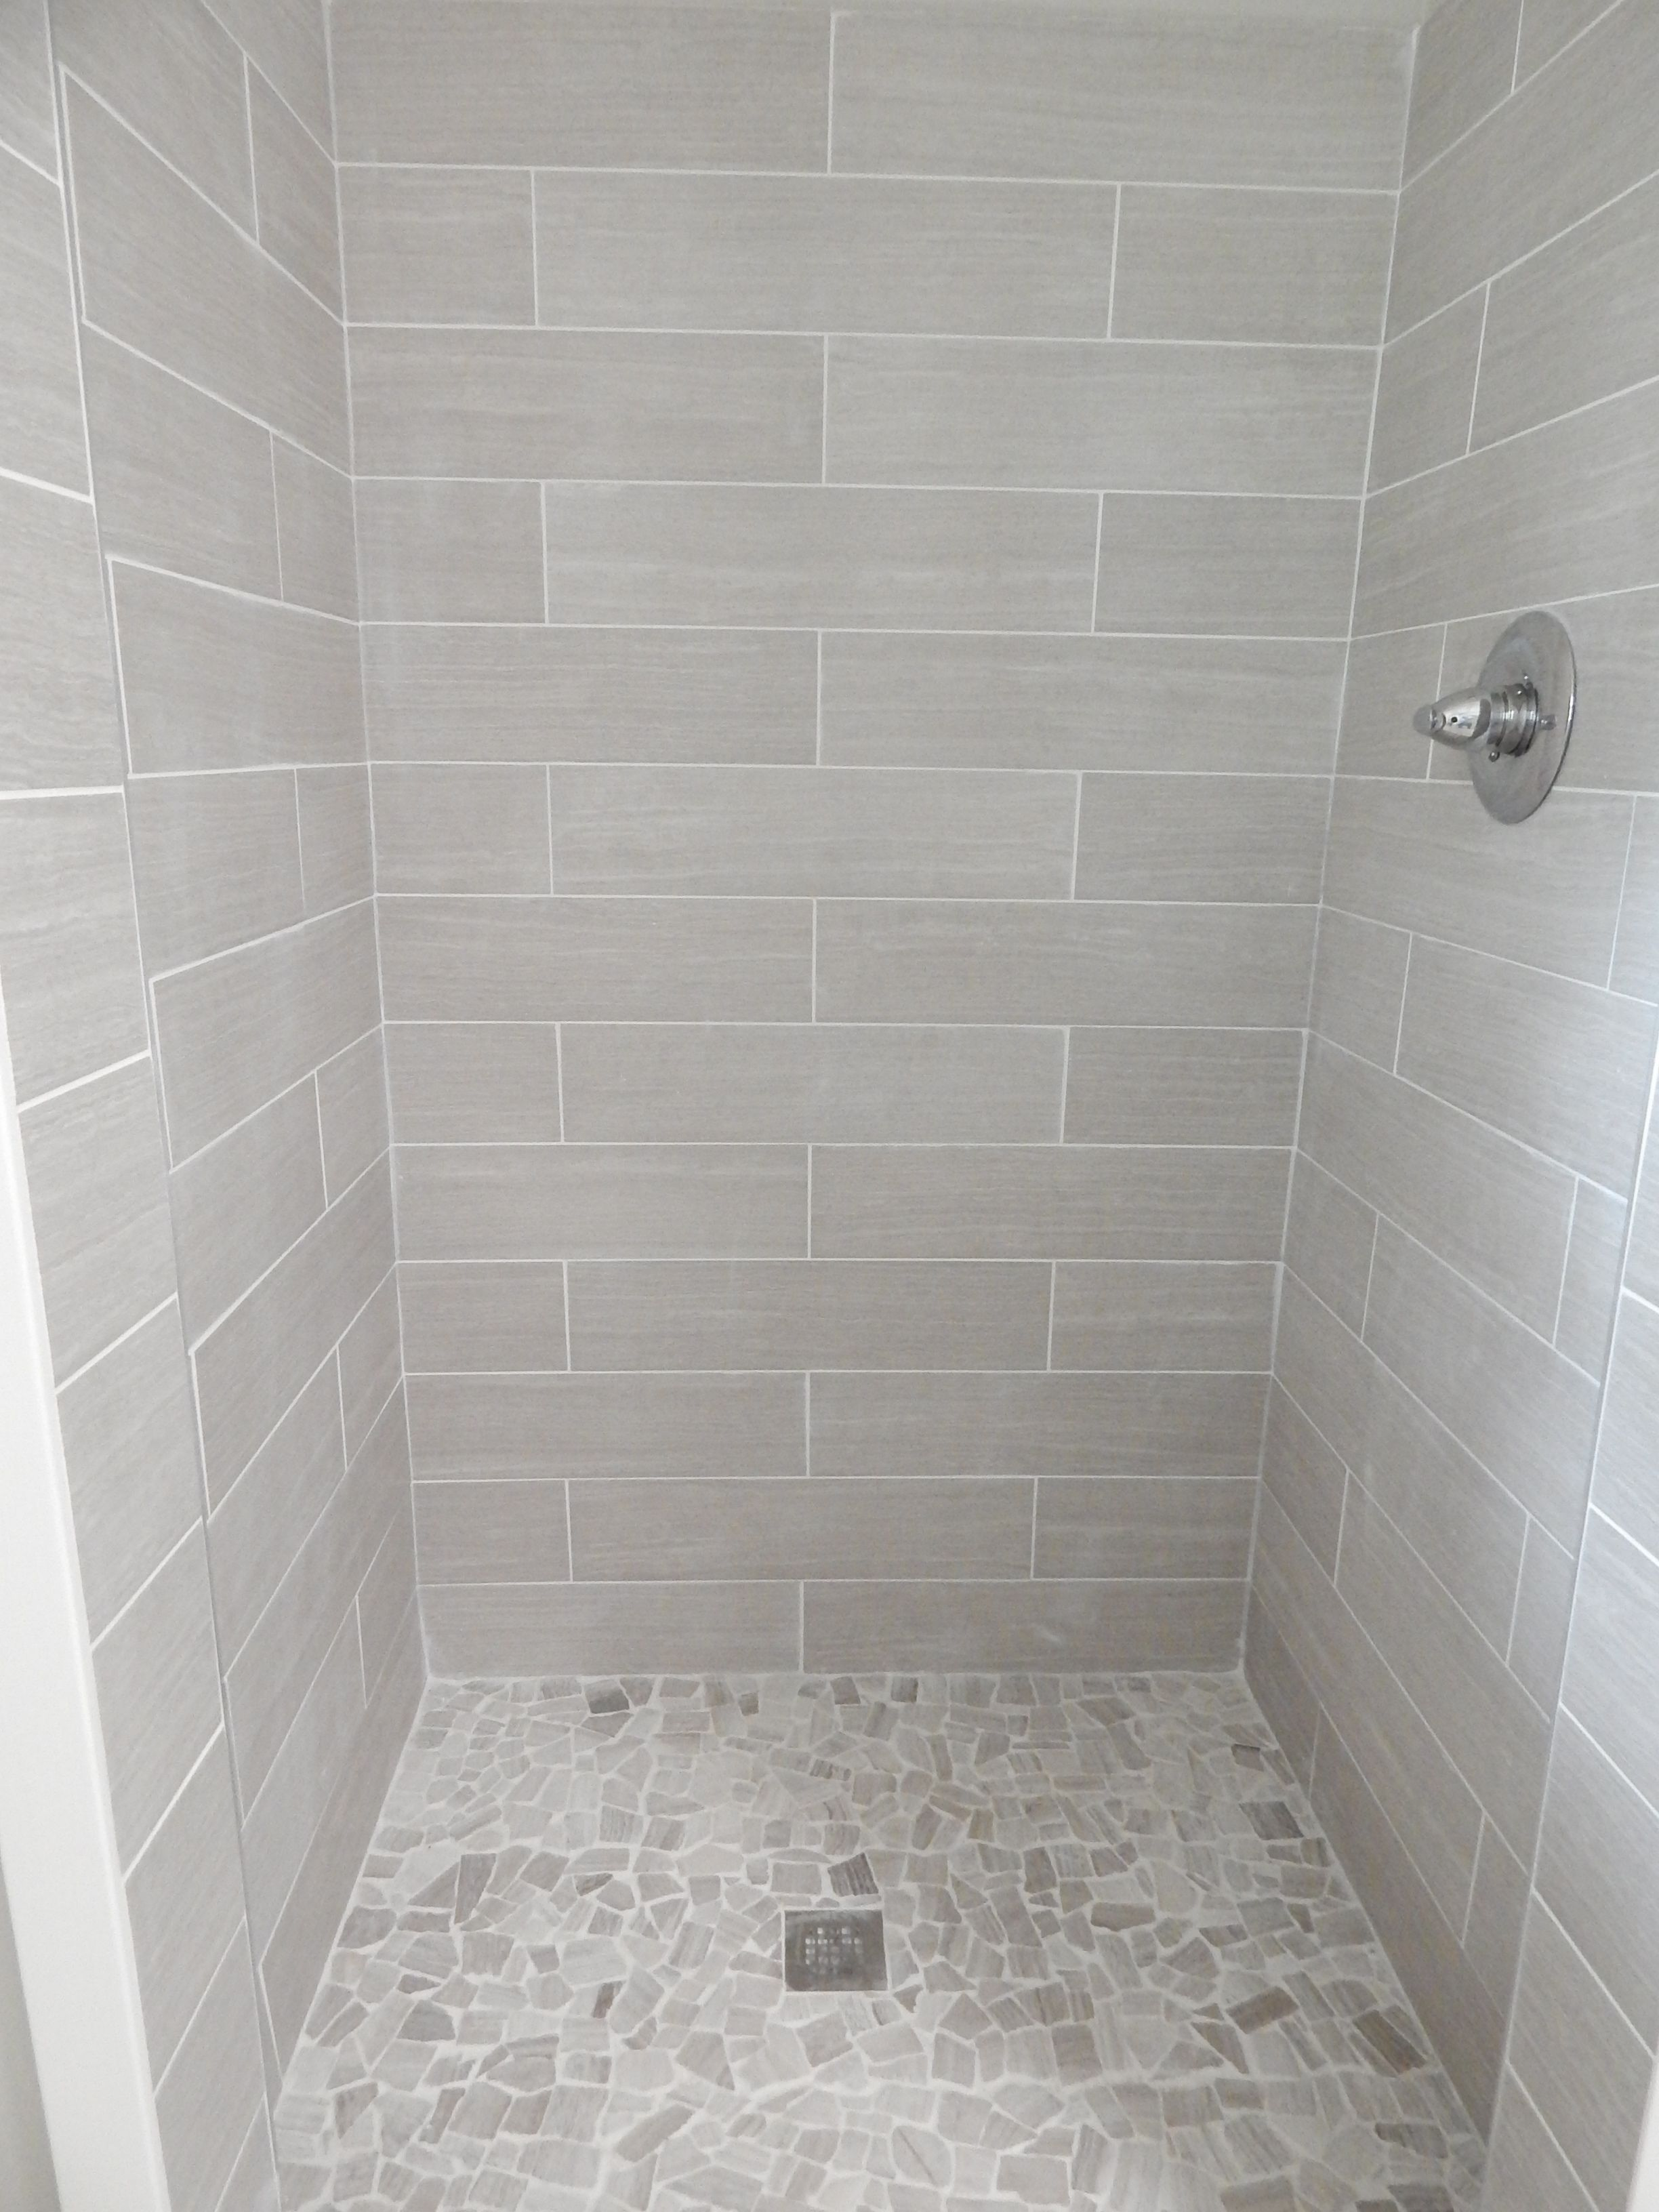 Bathroom tile ideas   With lots of different tiles on the